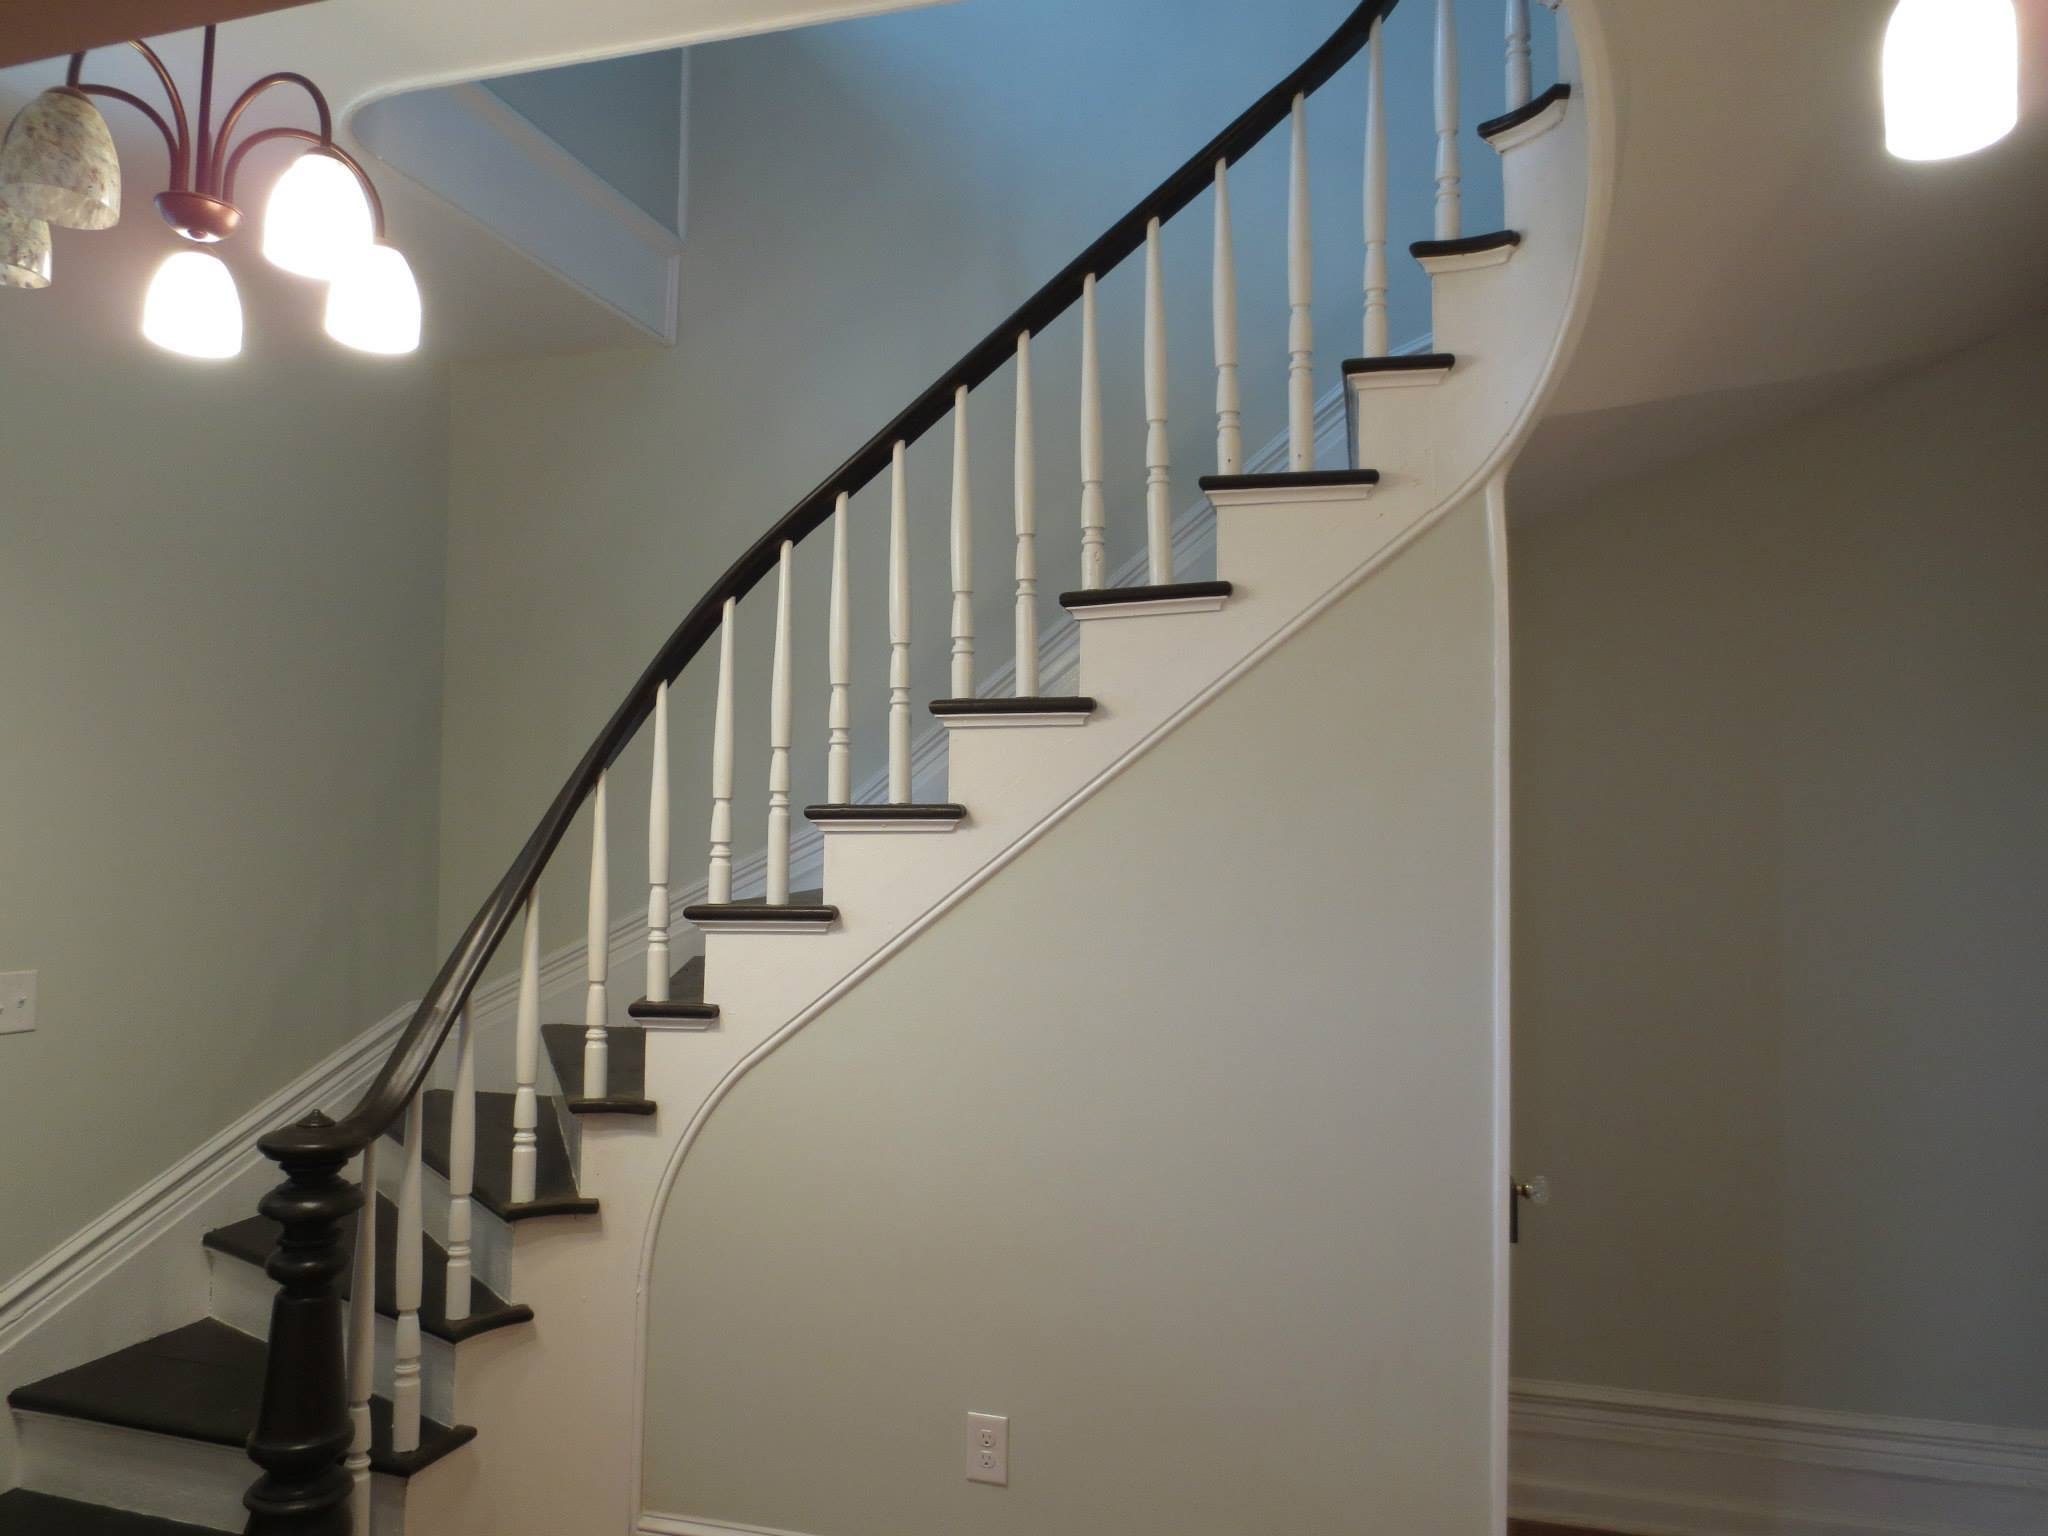 619 frederick st after renovation - spiral staircase